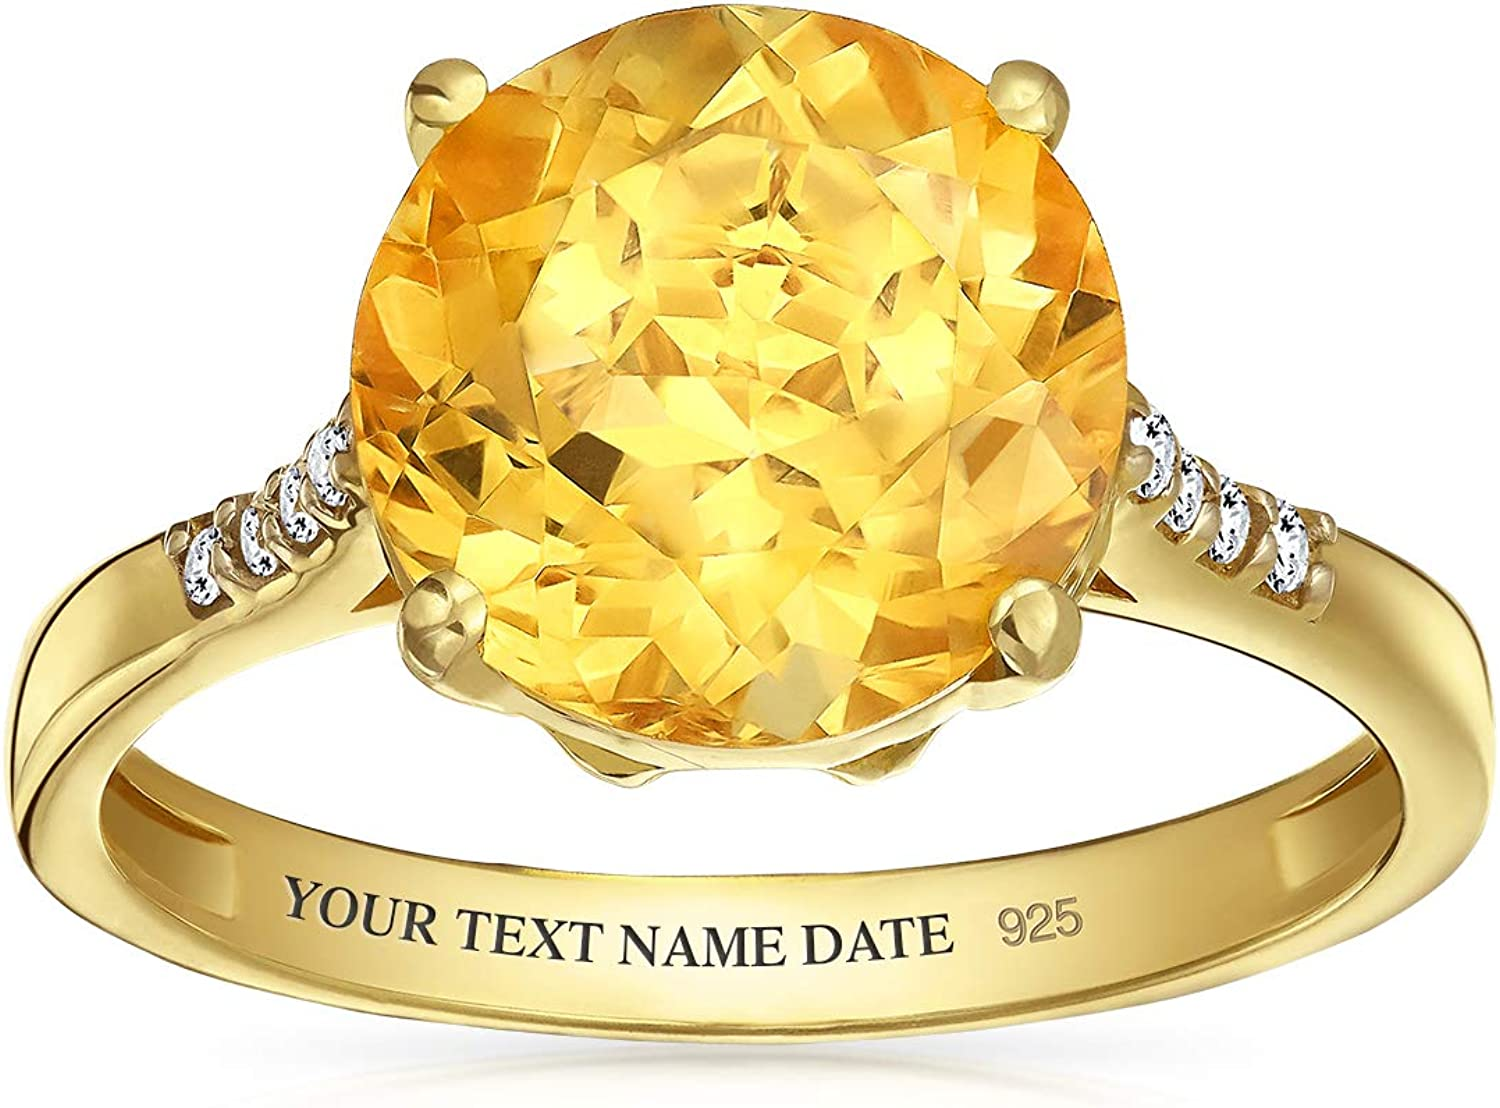 Personalize 3CT Brilliant Solitaire Gemstone Citri Many popular brands Yellow Zircon Limited price